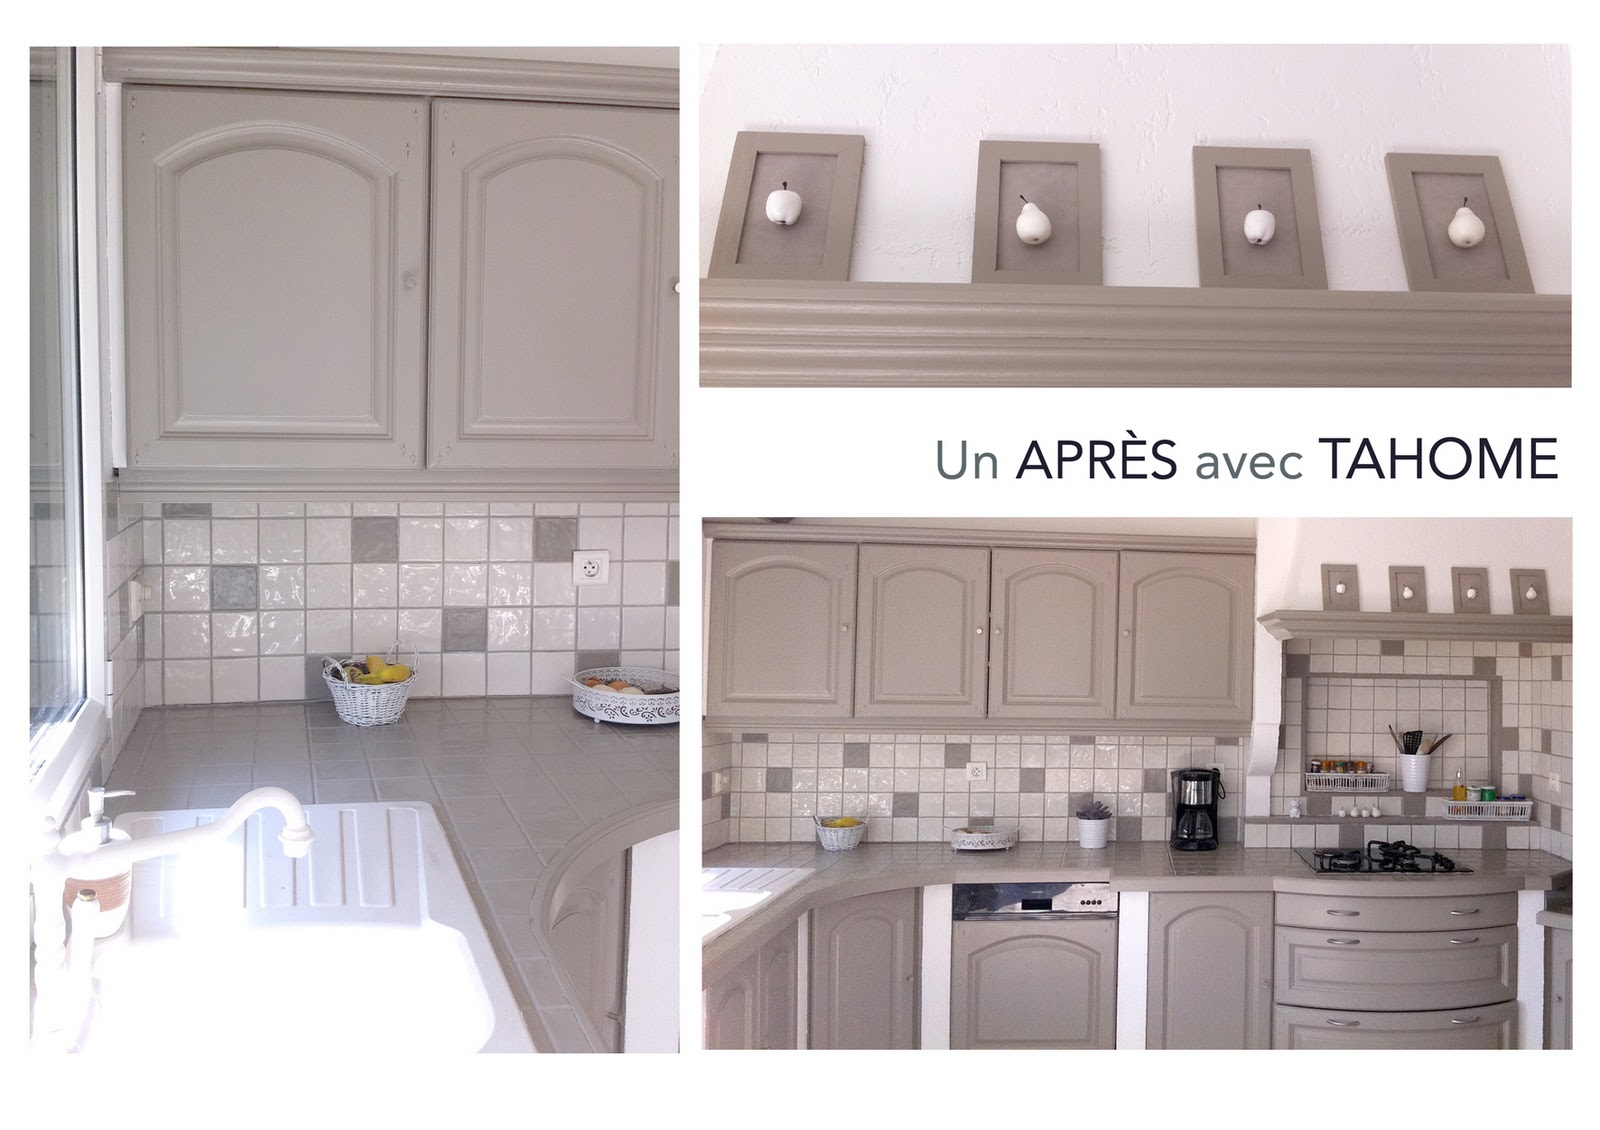 Achat Lit Complet Tahome: - Home Staging